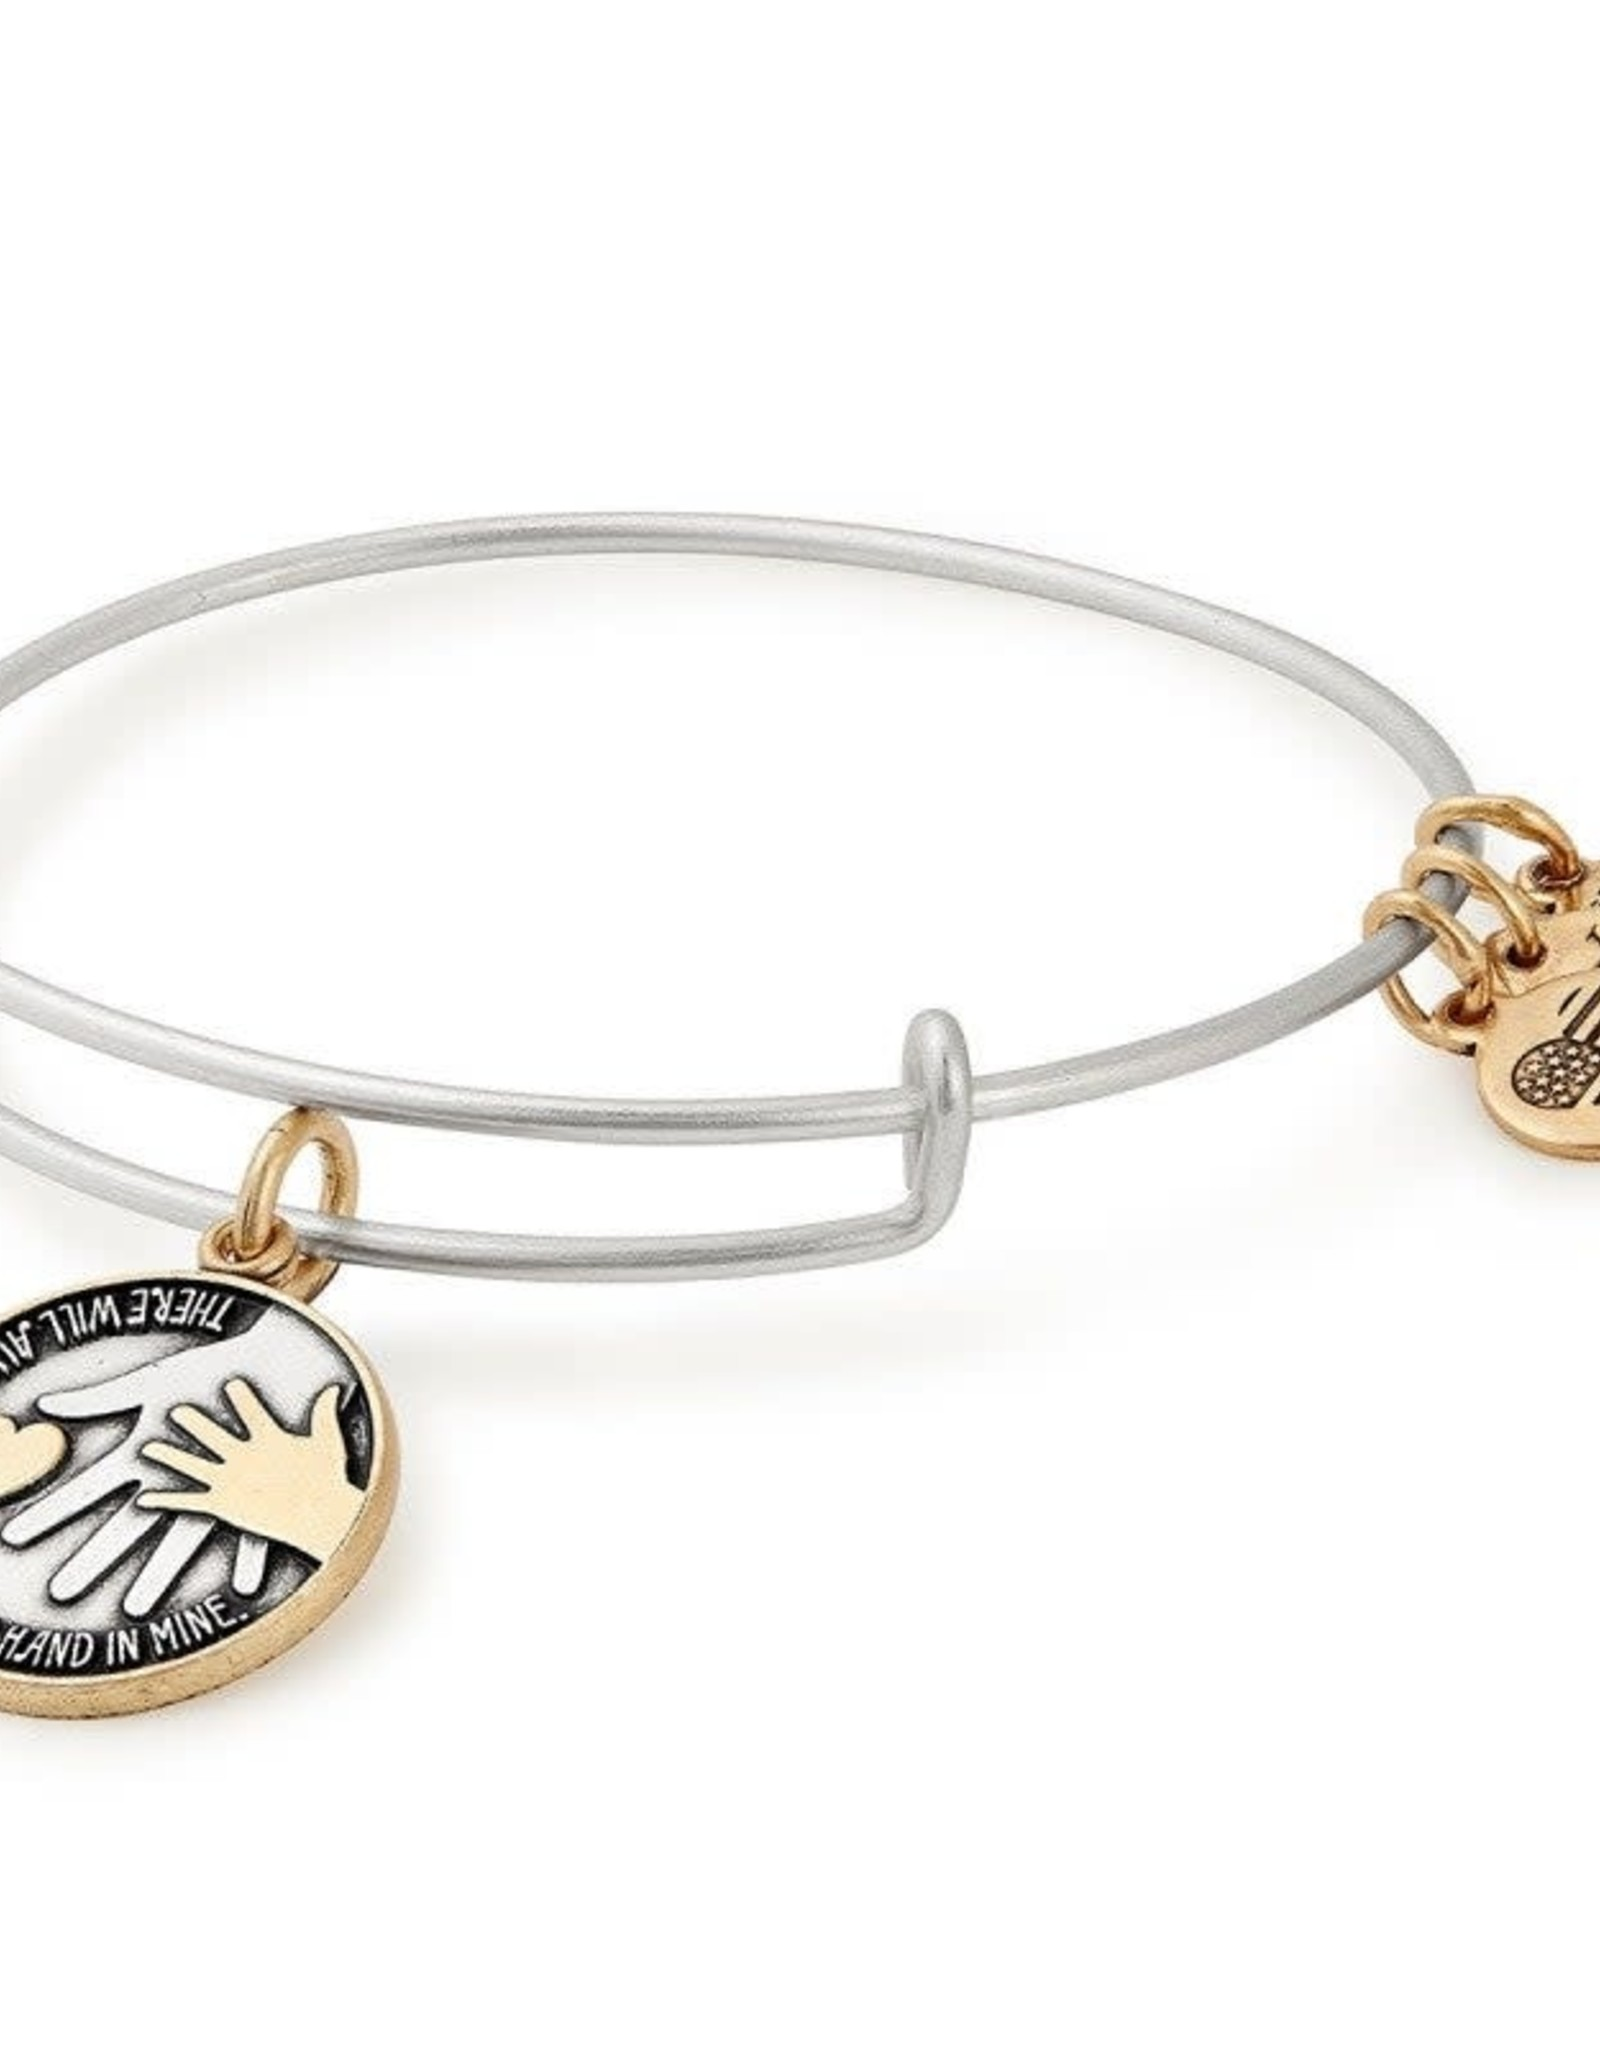 Alex and Ani Alex and Ani, Hand in Hand ll, Two Tone, RS